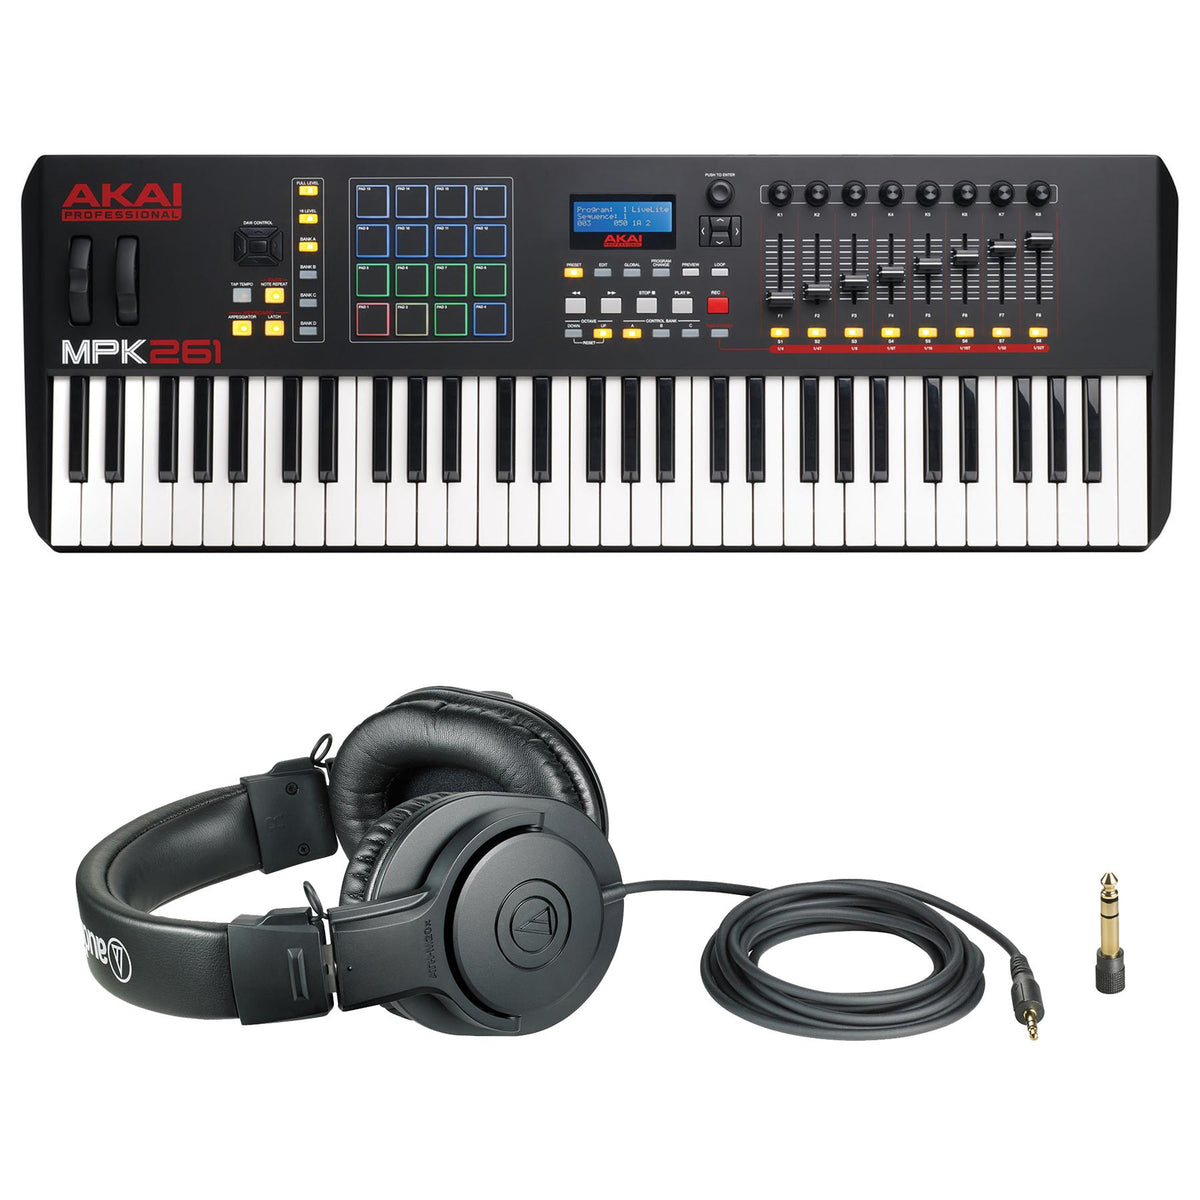 Akai MPK261 USB Keyboard Controller Bundle with Audio-Technica ATH-M20x Headphones